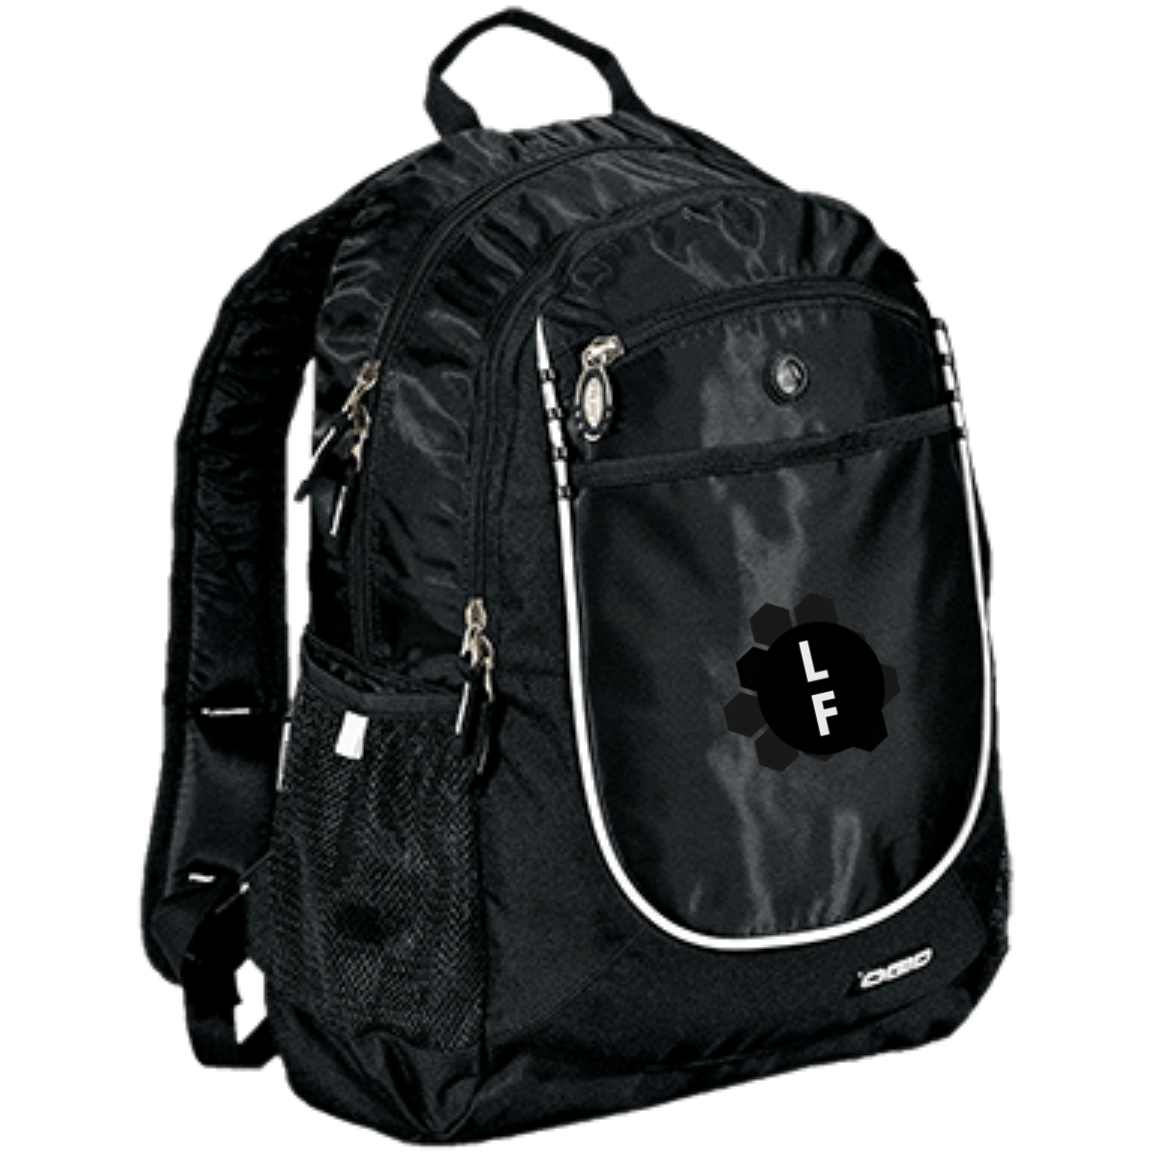 Rugged Bookbag - From Luggage Factory